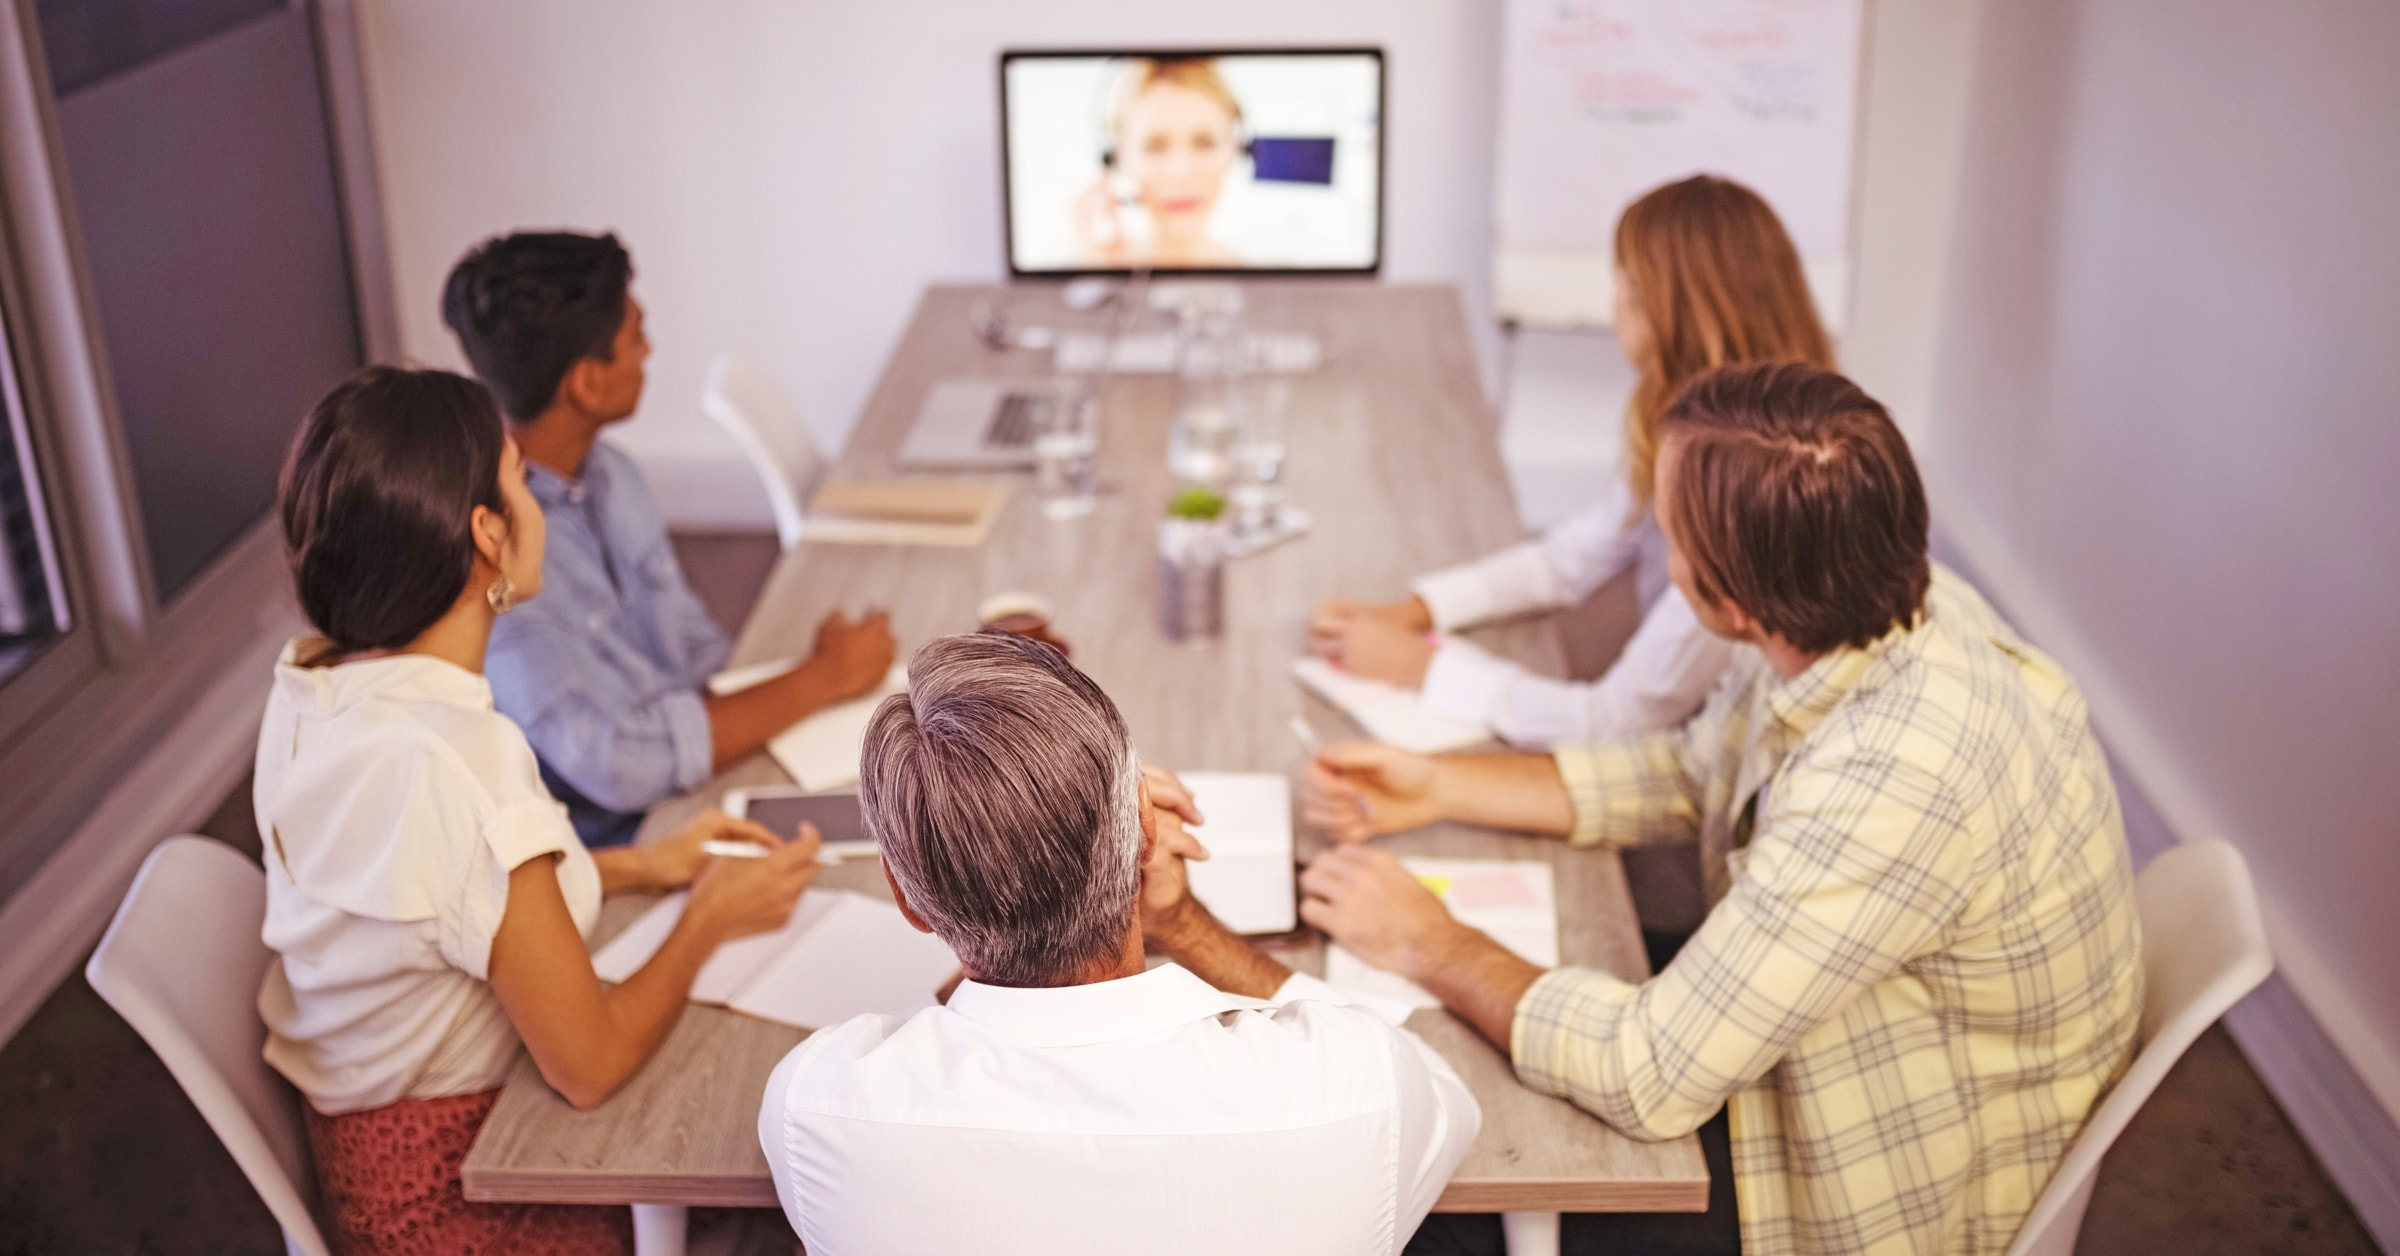 Meeting room layouts and BYOD policies don't have to cause complexity. Here's our checklist for video conferencing hardware and software requirements and considerations for 2019.